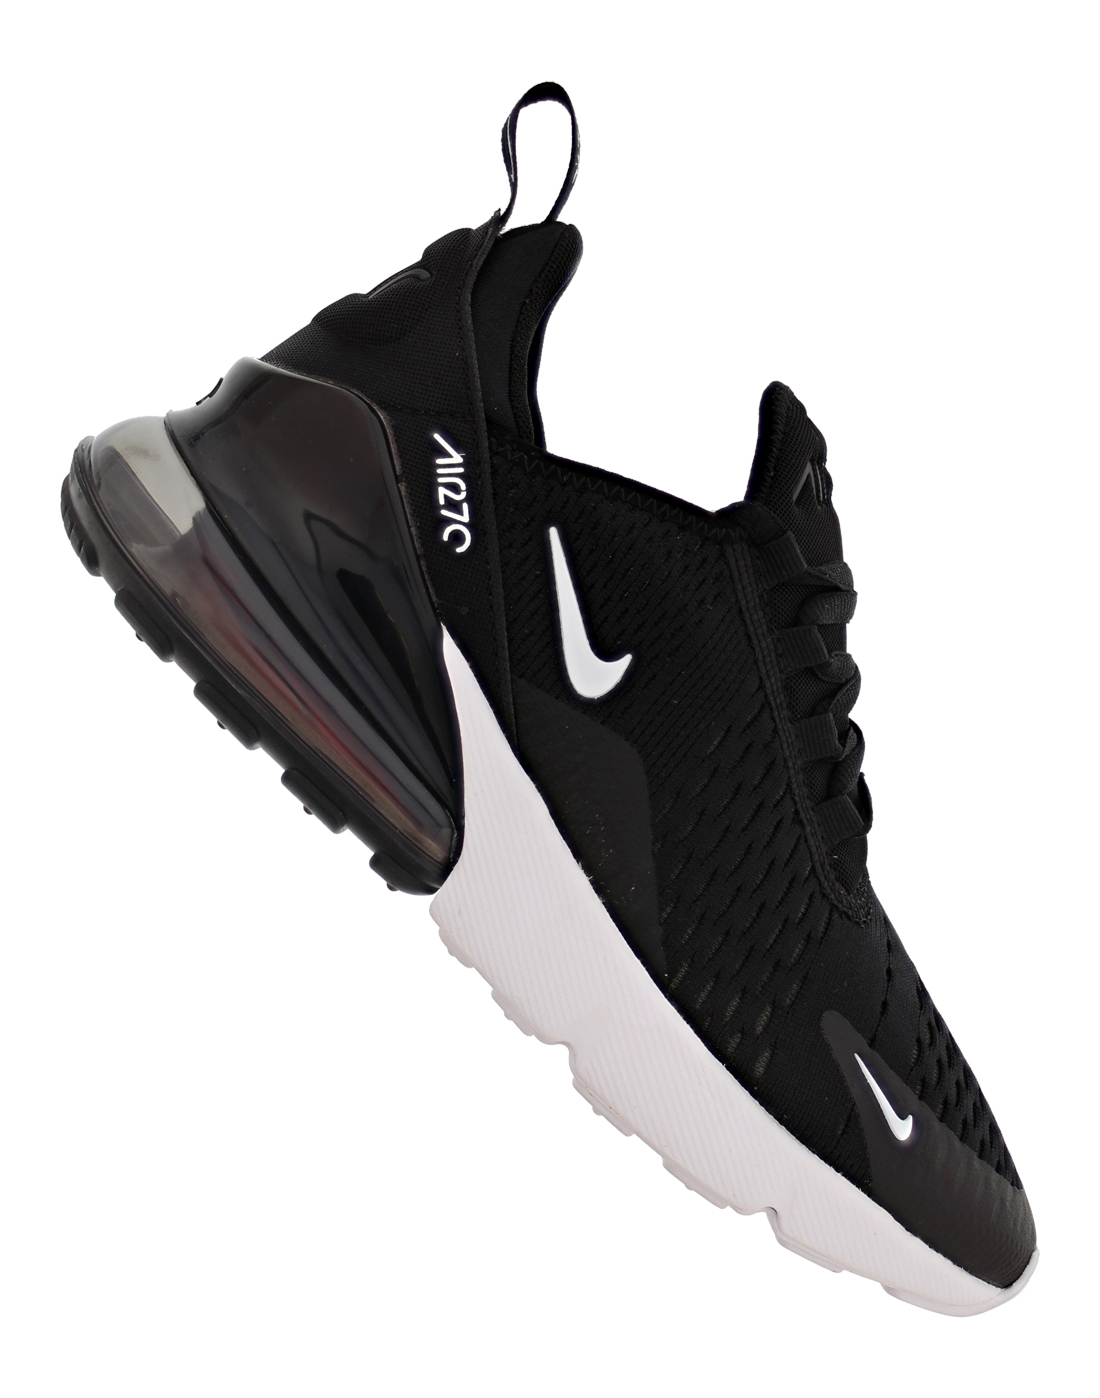 8ccc65eb8f7 Kids Nike Air Max 270 Trainers